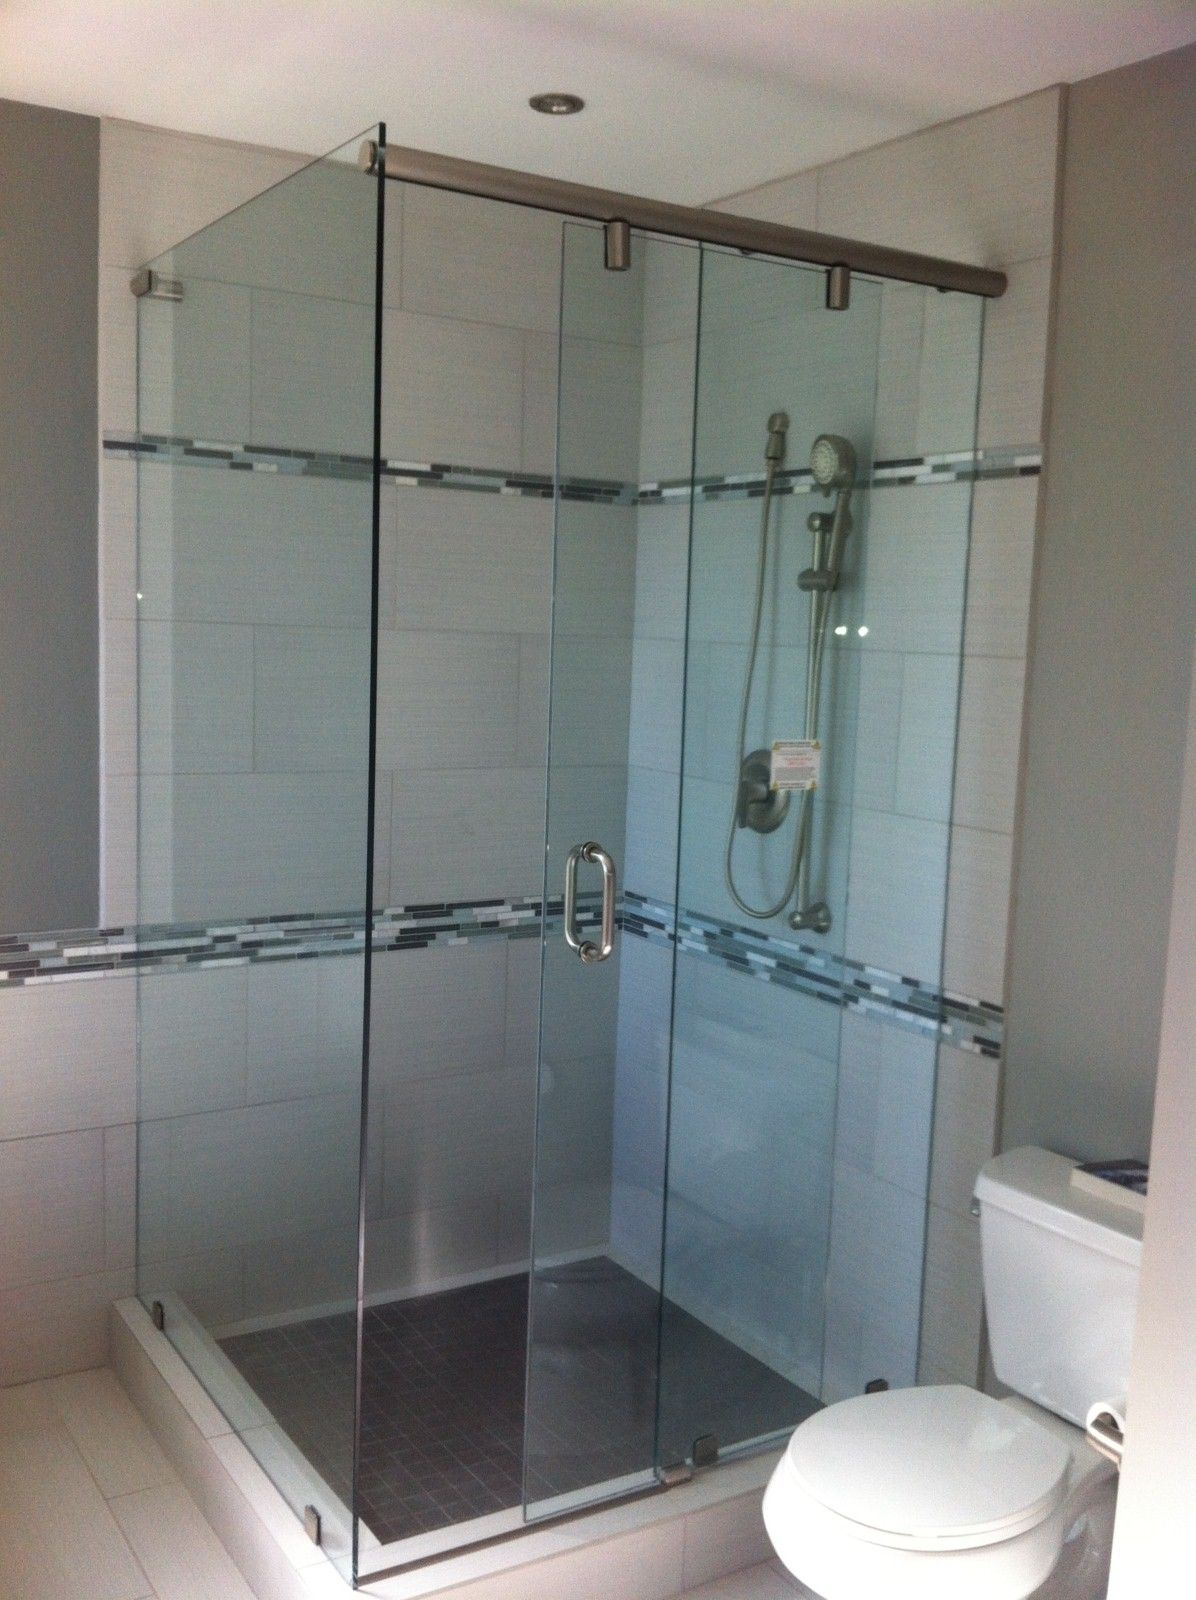 This High Quality All In One Showercubicle Has Been Designed To Fit In Exactly The Same Space As Your Old Bath The Inno Shower Cubicles Shower Units Shower